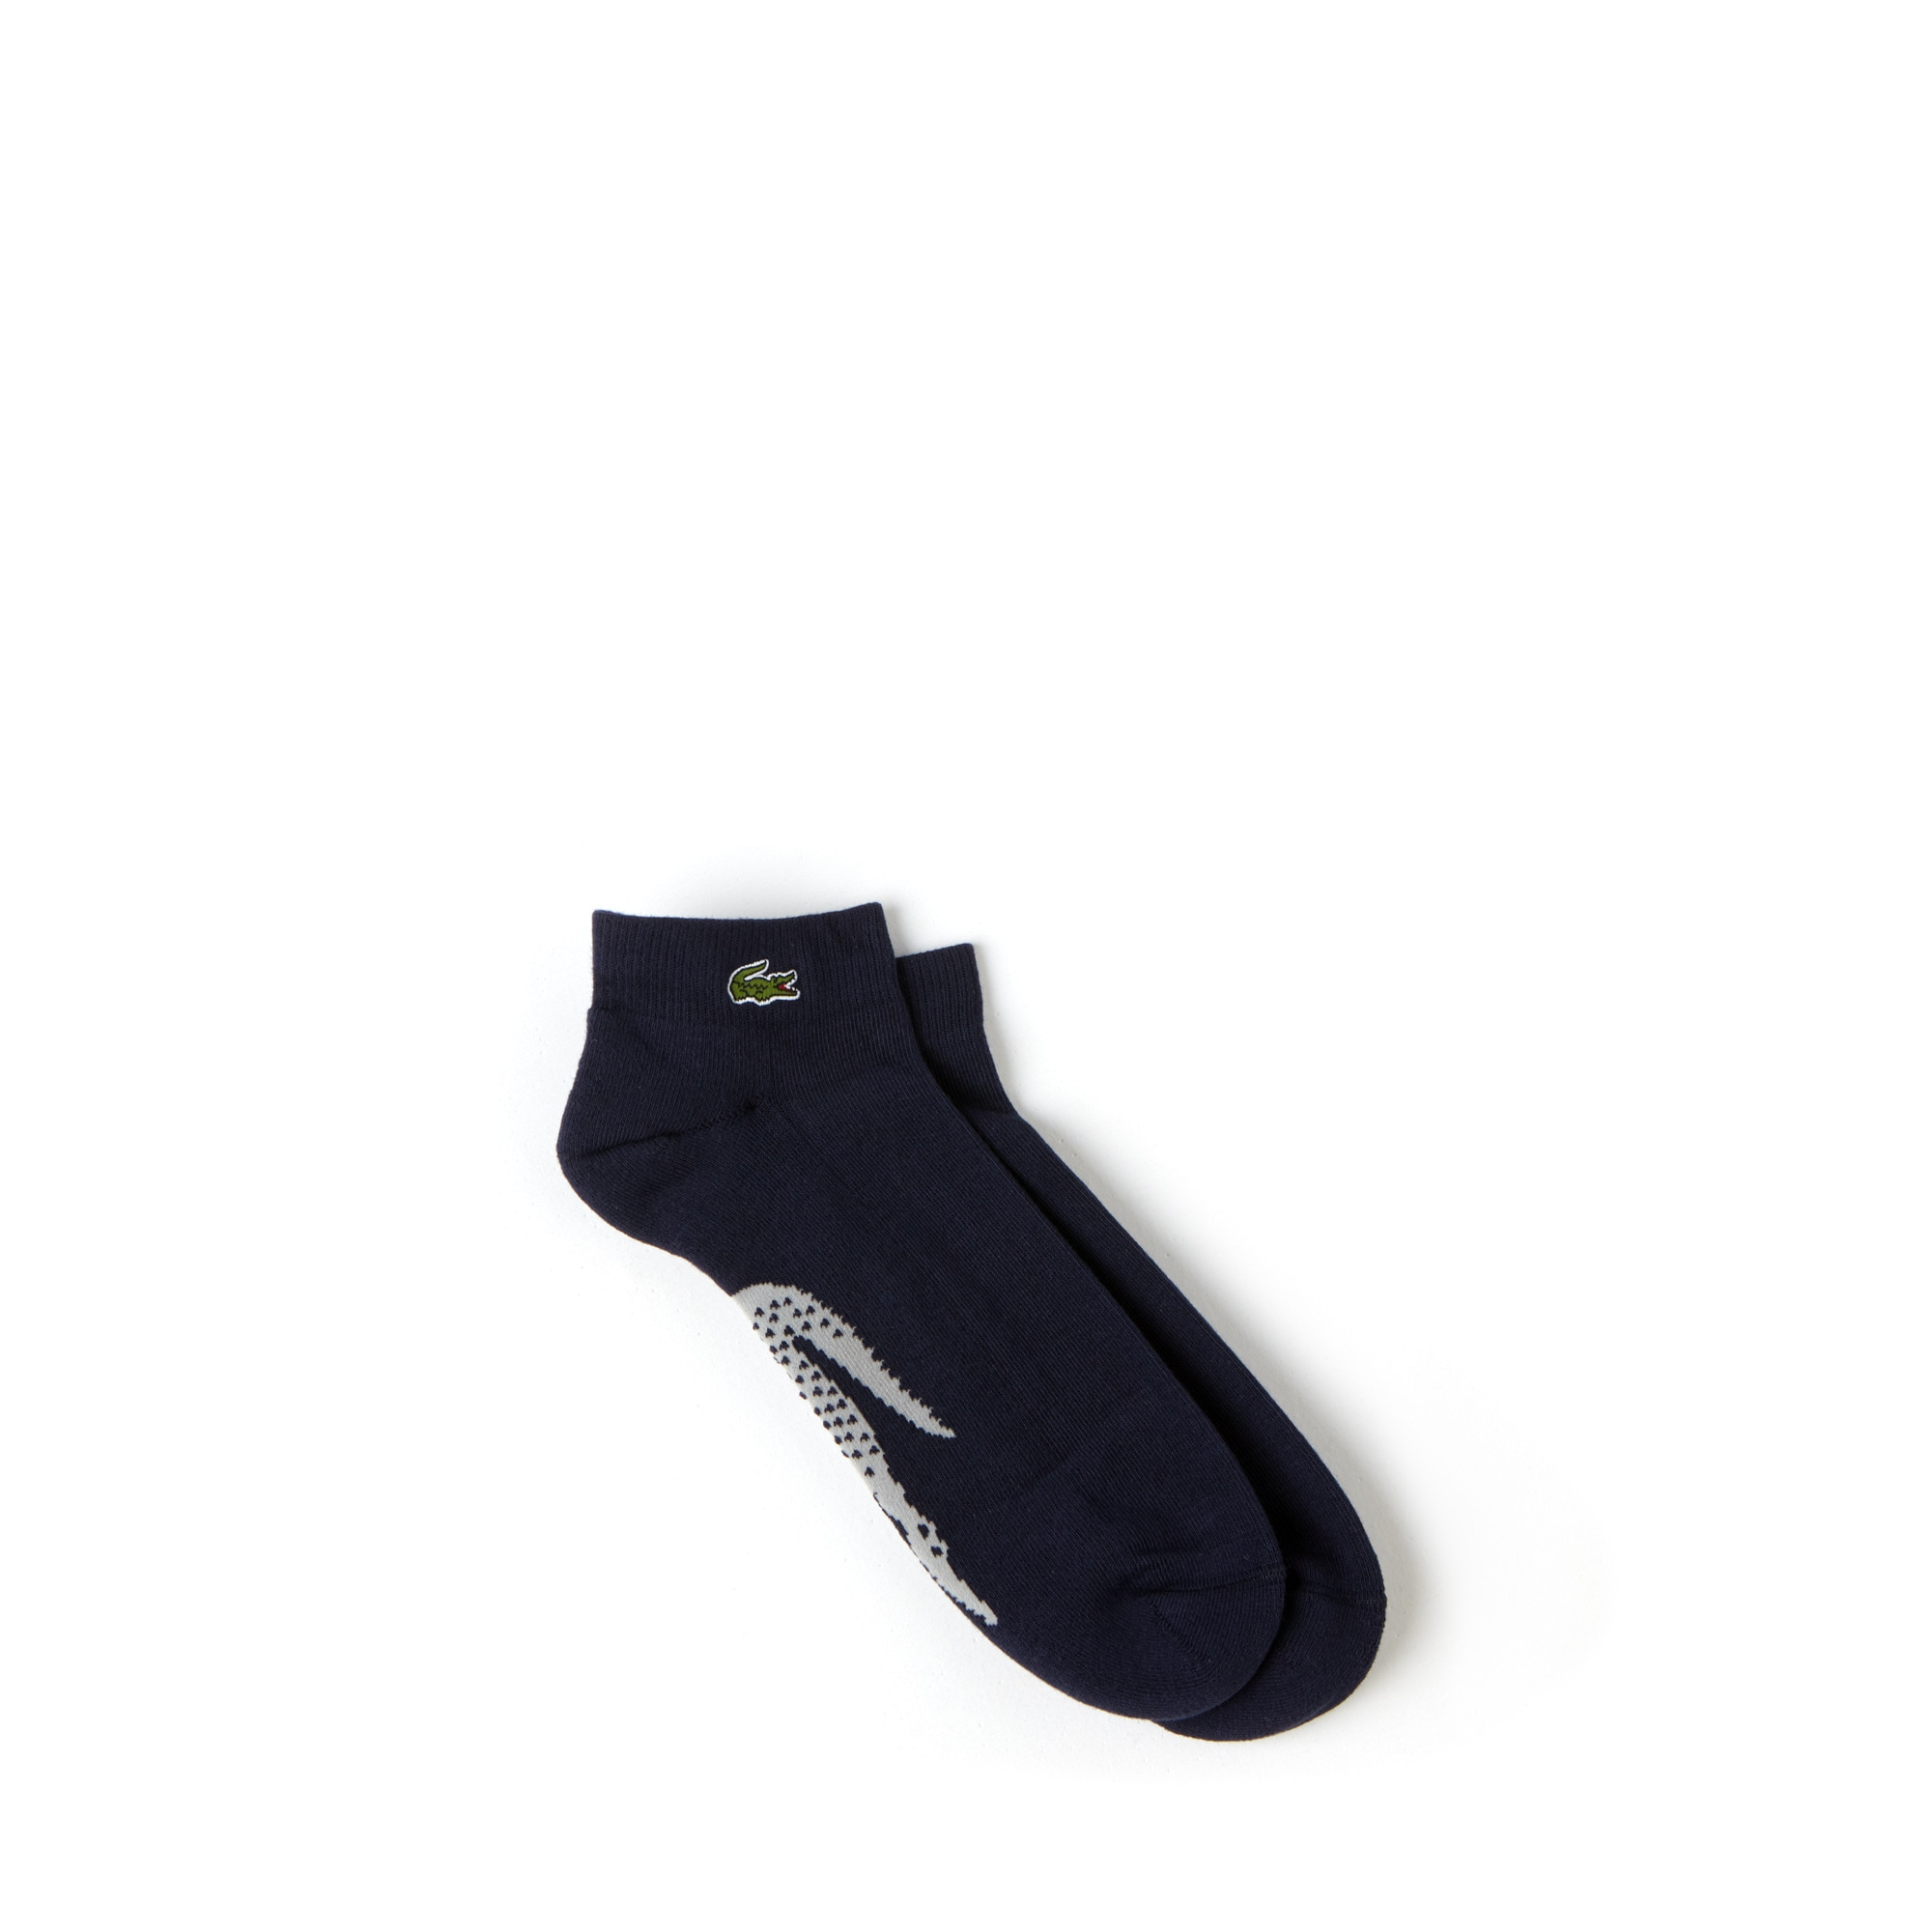 Men's Quarter Ped Sock